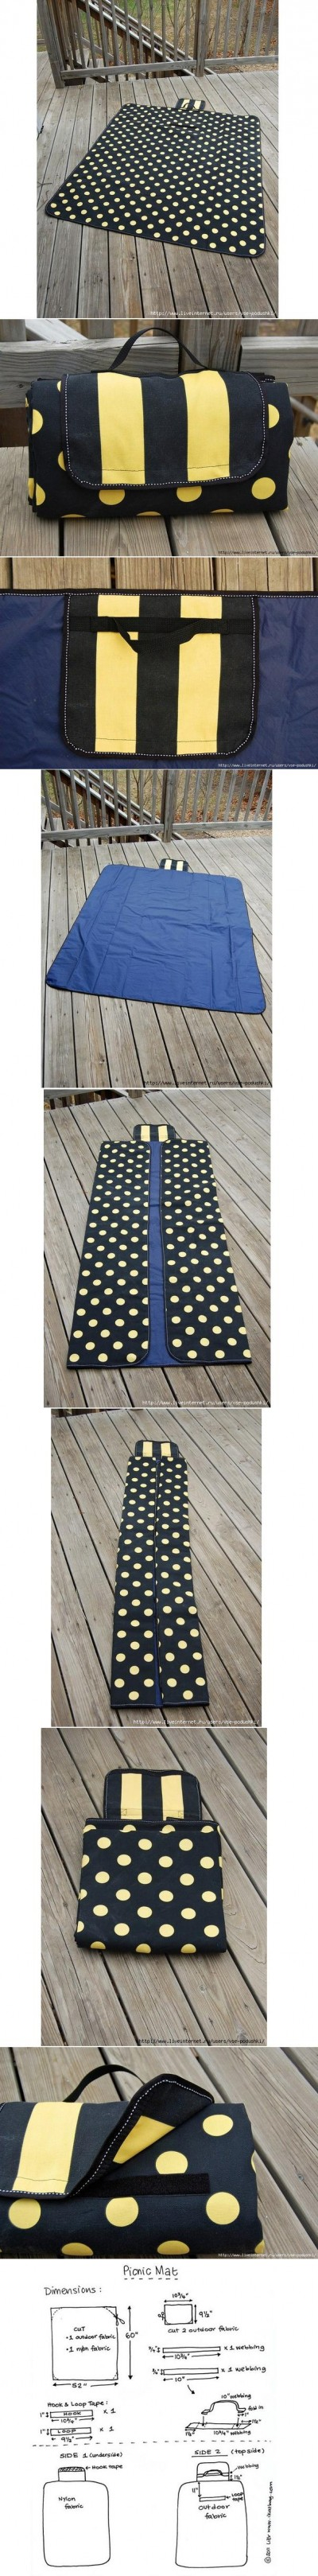 How to make Picnic Mat step by step DIY instructions